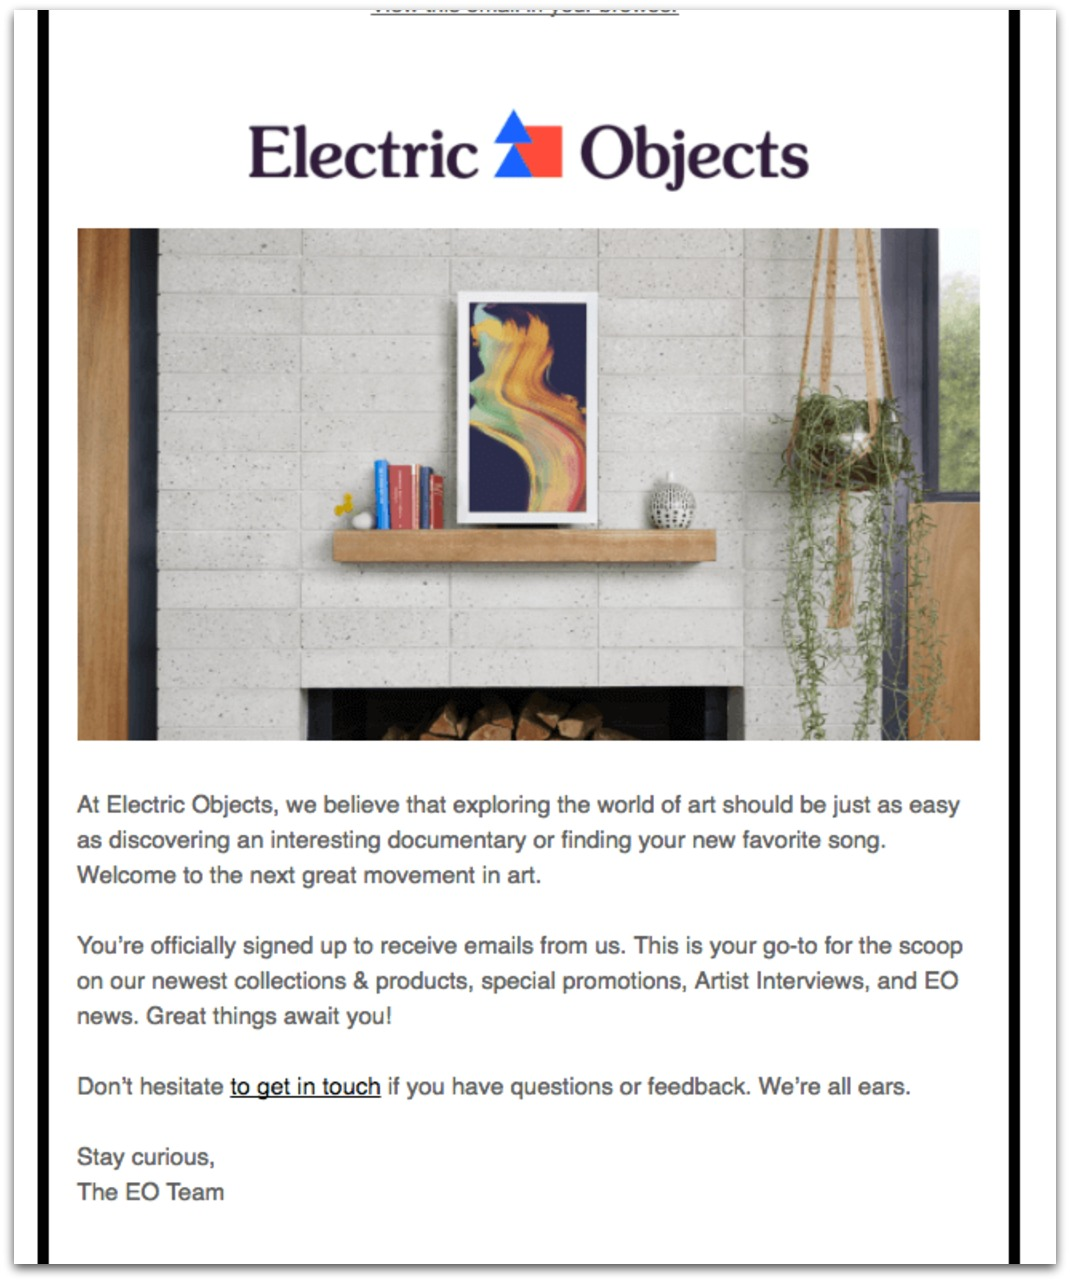 electric objects email example